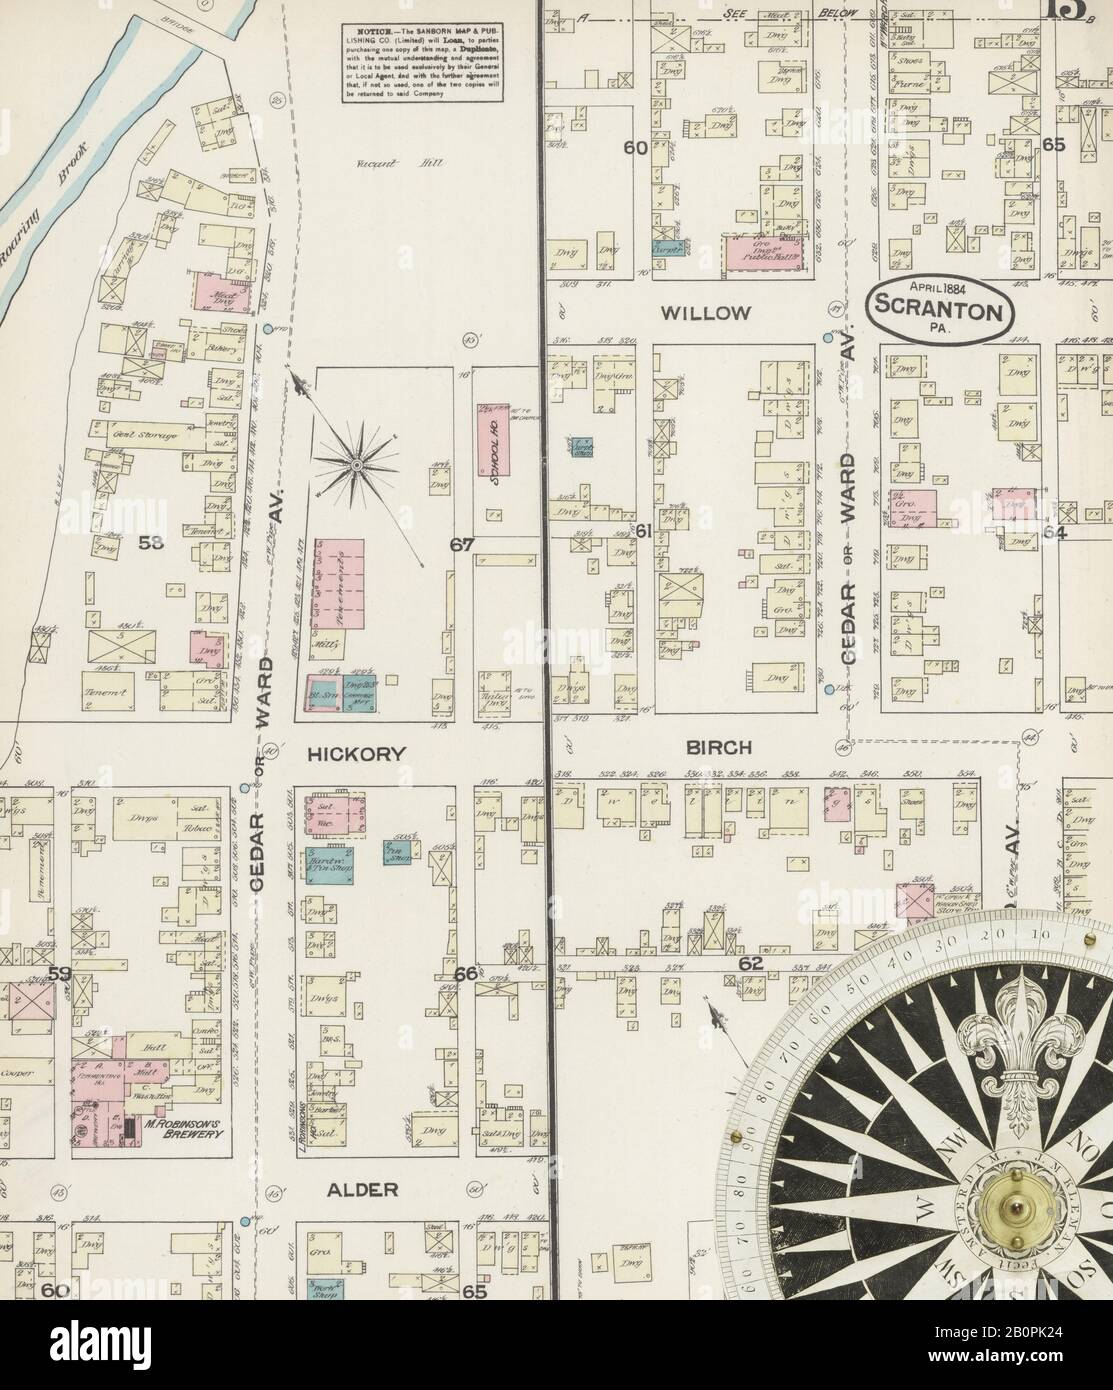 Image 13 of Sanborn Fire Insurance Map from Scranton, Lackawanna County, Pennsylvania. Apr 1884. 18 Sheet(s), America, street map with a Nineteenth Century compass Stock Photo